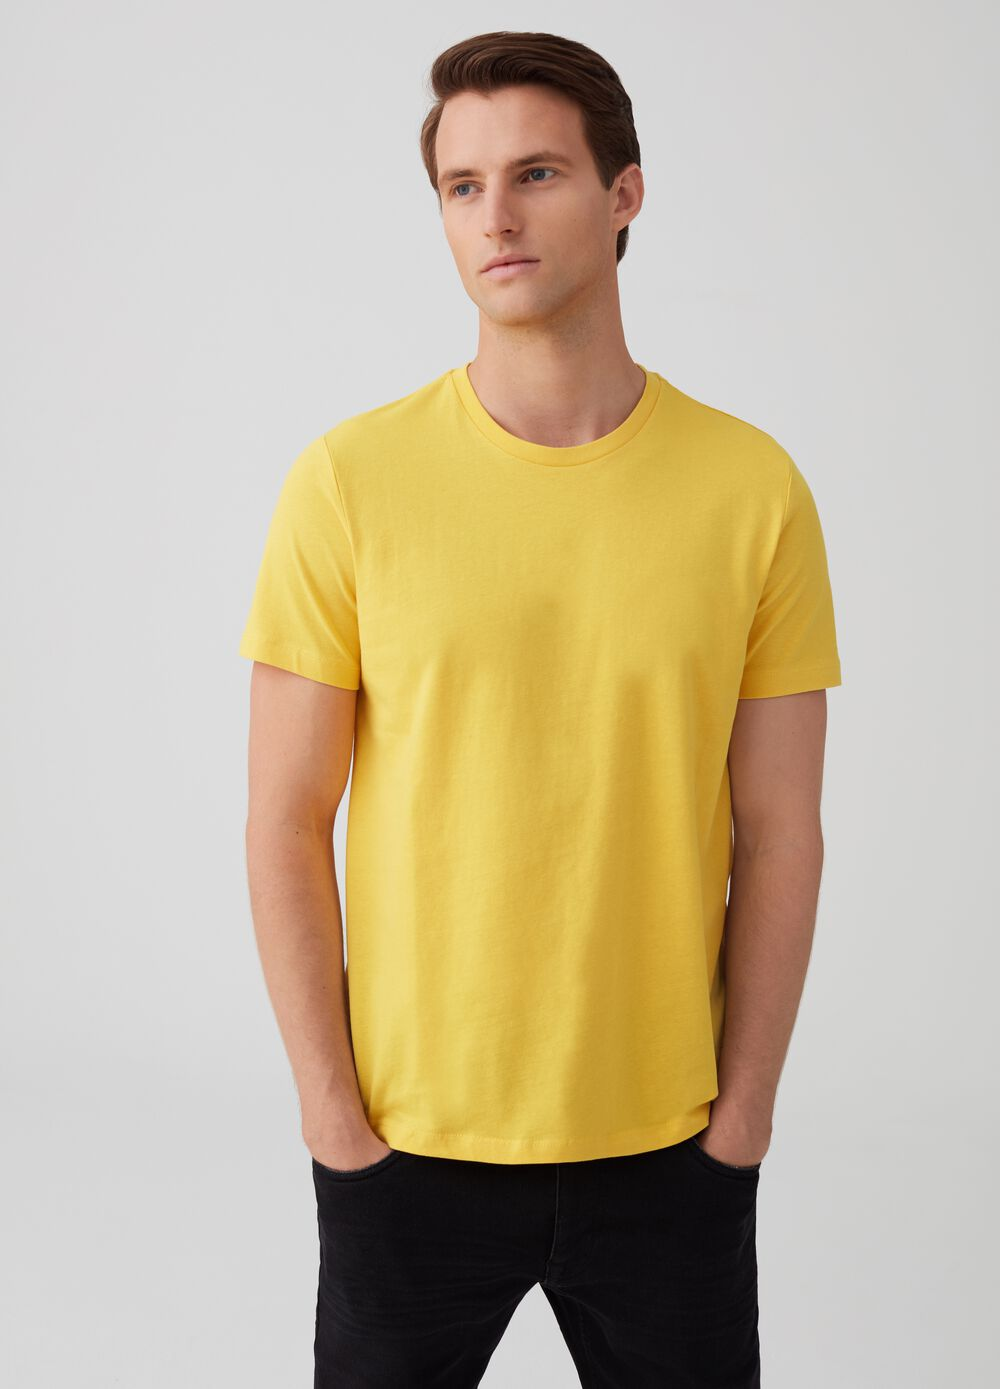 100% cotton T-shirt with round neck